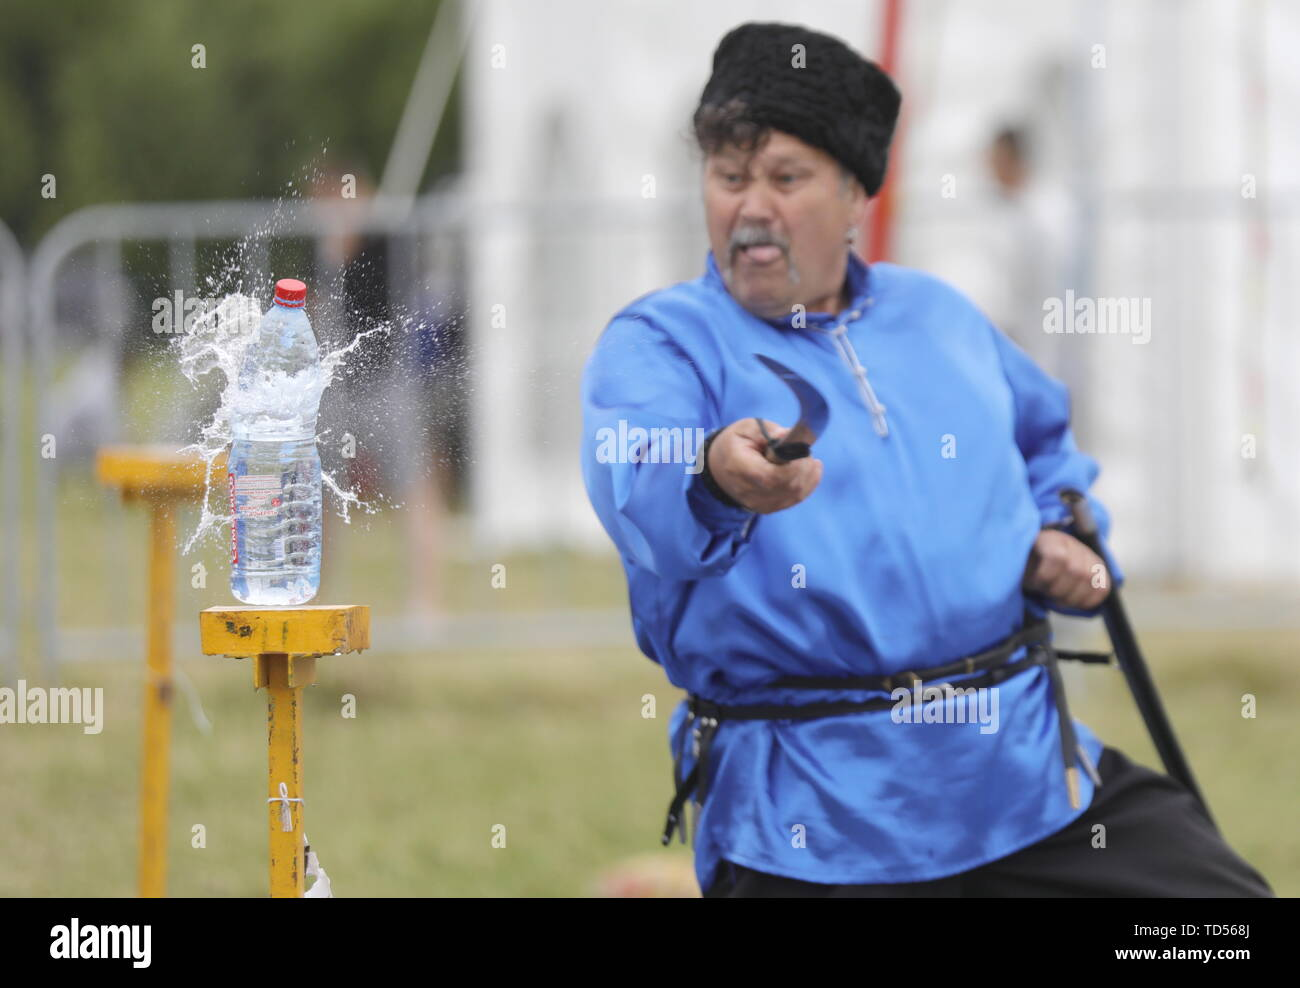 Chelyabinsk, Russia. 12th June, 2019. MOSCOW REGION, RUSSIA - JUNE 12, 2019: A man in a Cossack costume shows his sword skills at Russky Mir Festival in the town of Sergiyev Posad on 12 June, known as Russia Day. Mikhail Japaridze/TASS Credit: ITAR-TASS News Agency/Alamy Live News Stock Photo